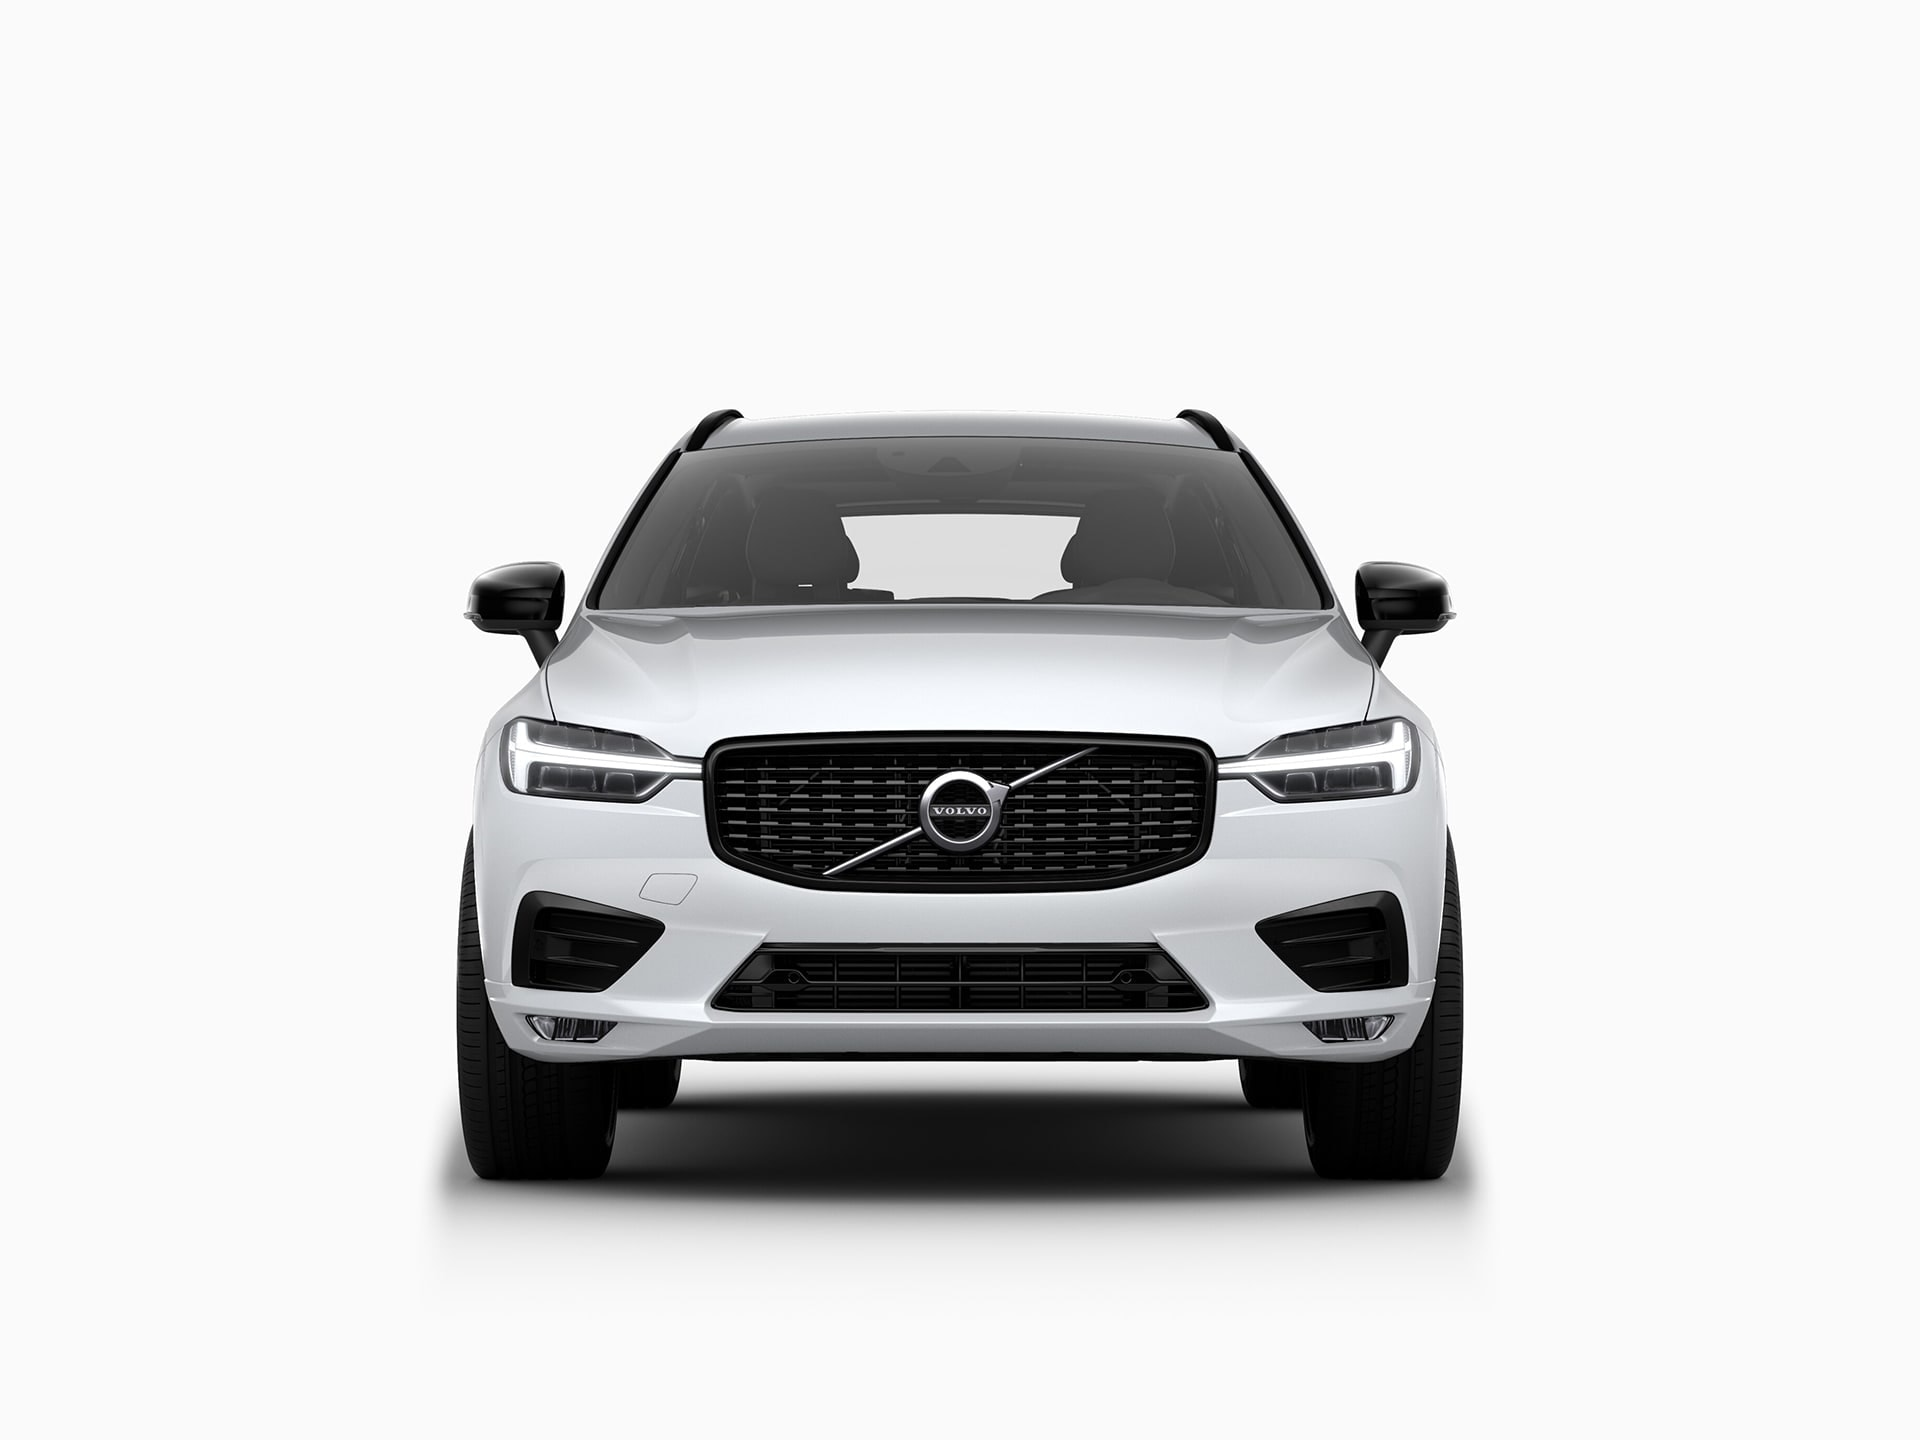 The front of a Volvo XC60 SUV.